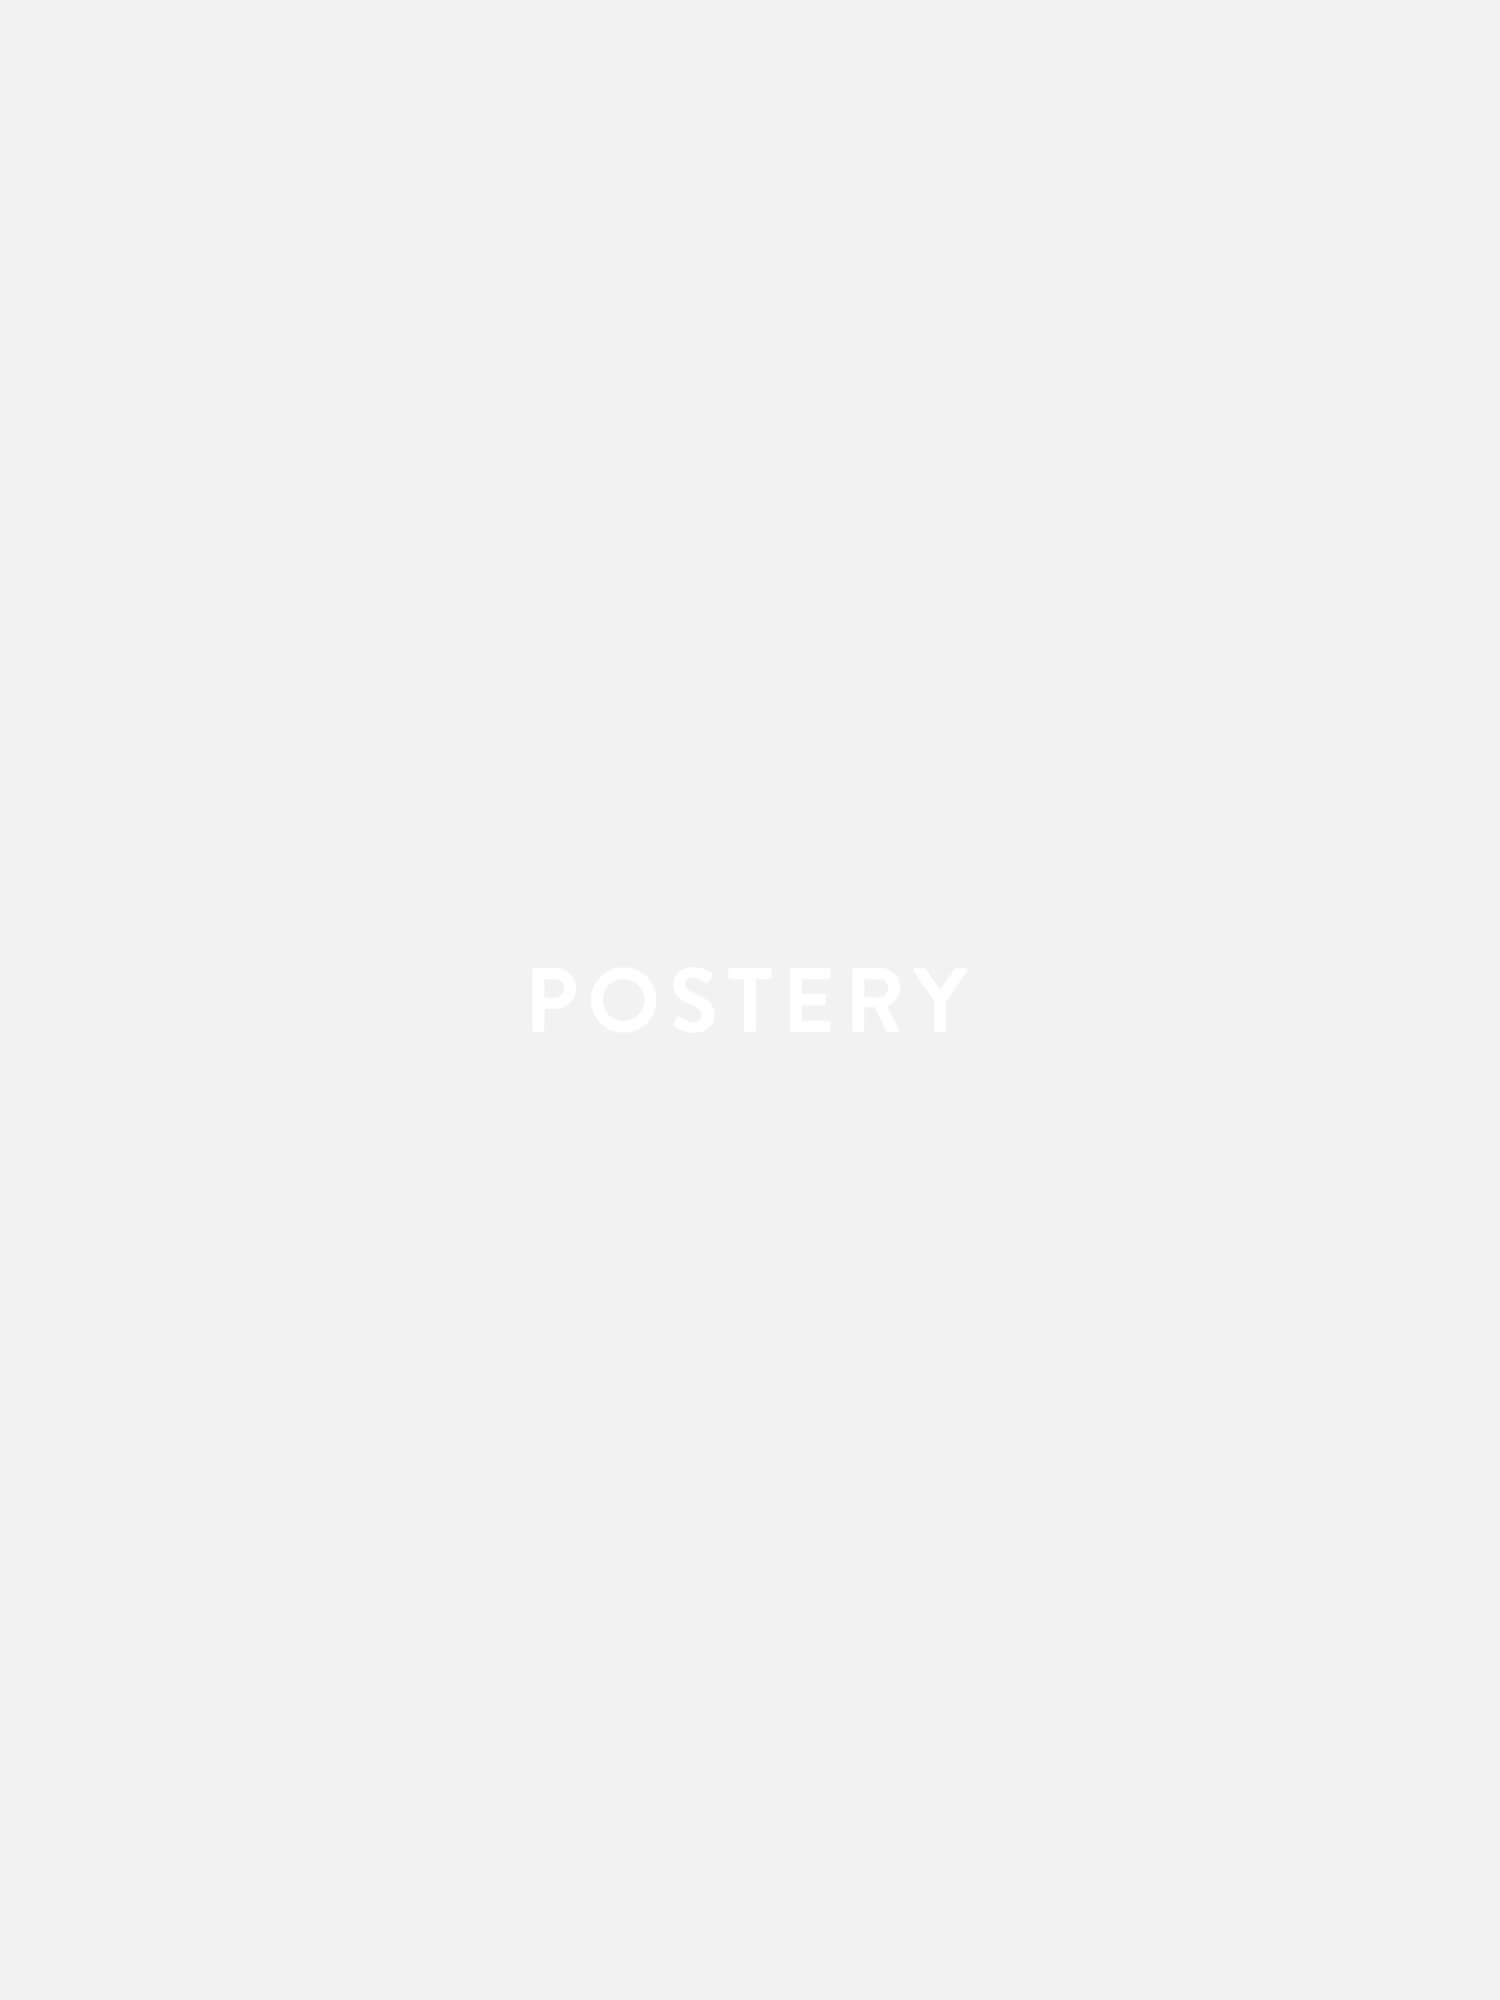 Wilted Flower Vase Poster